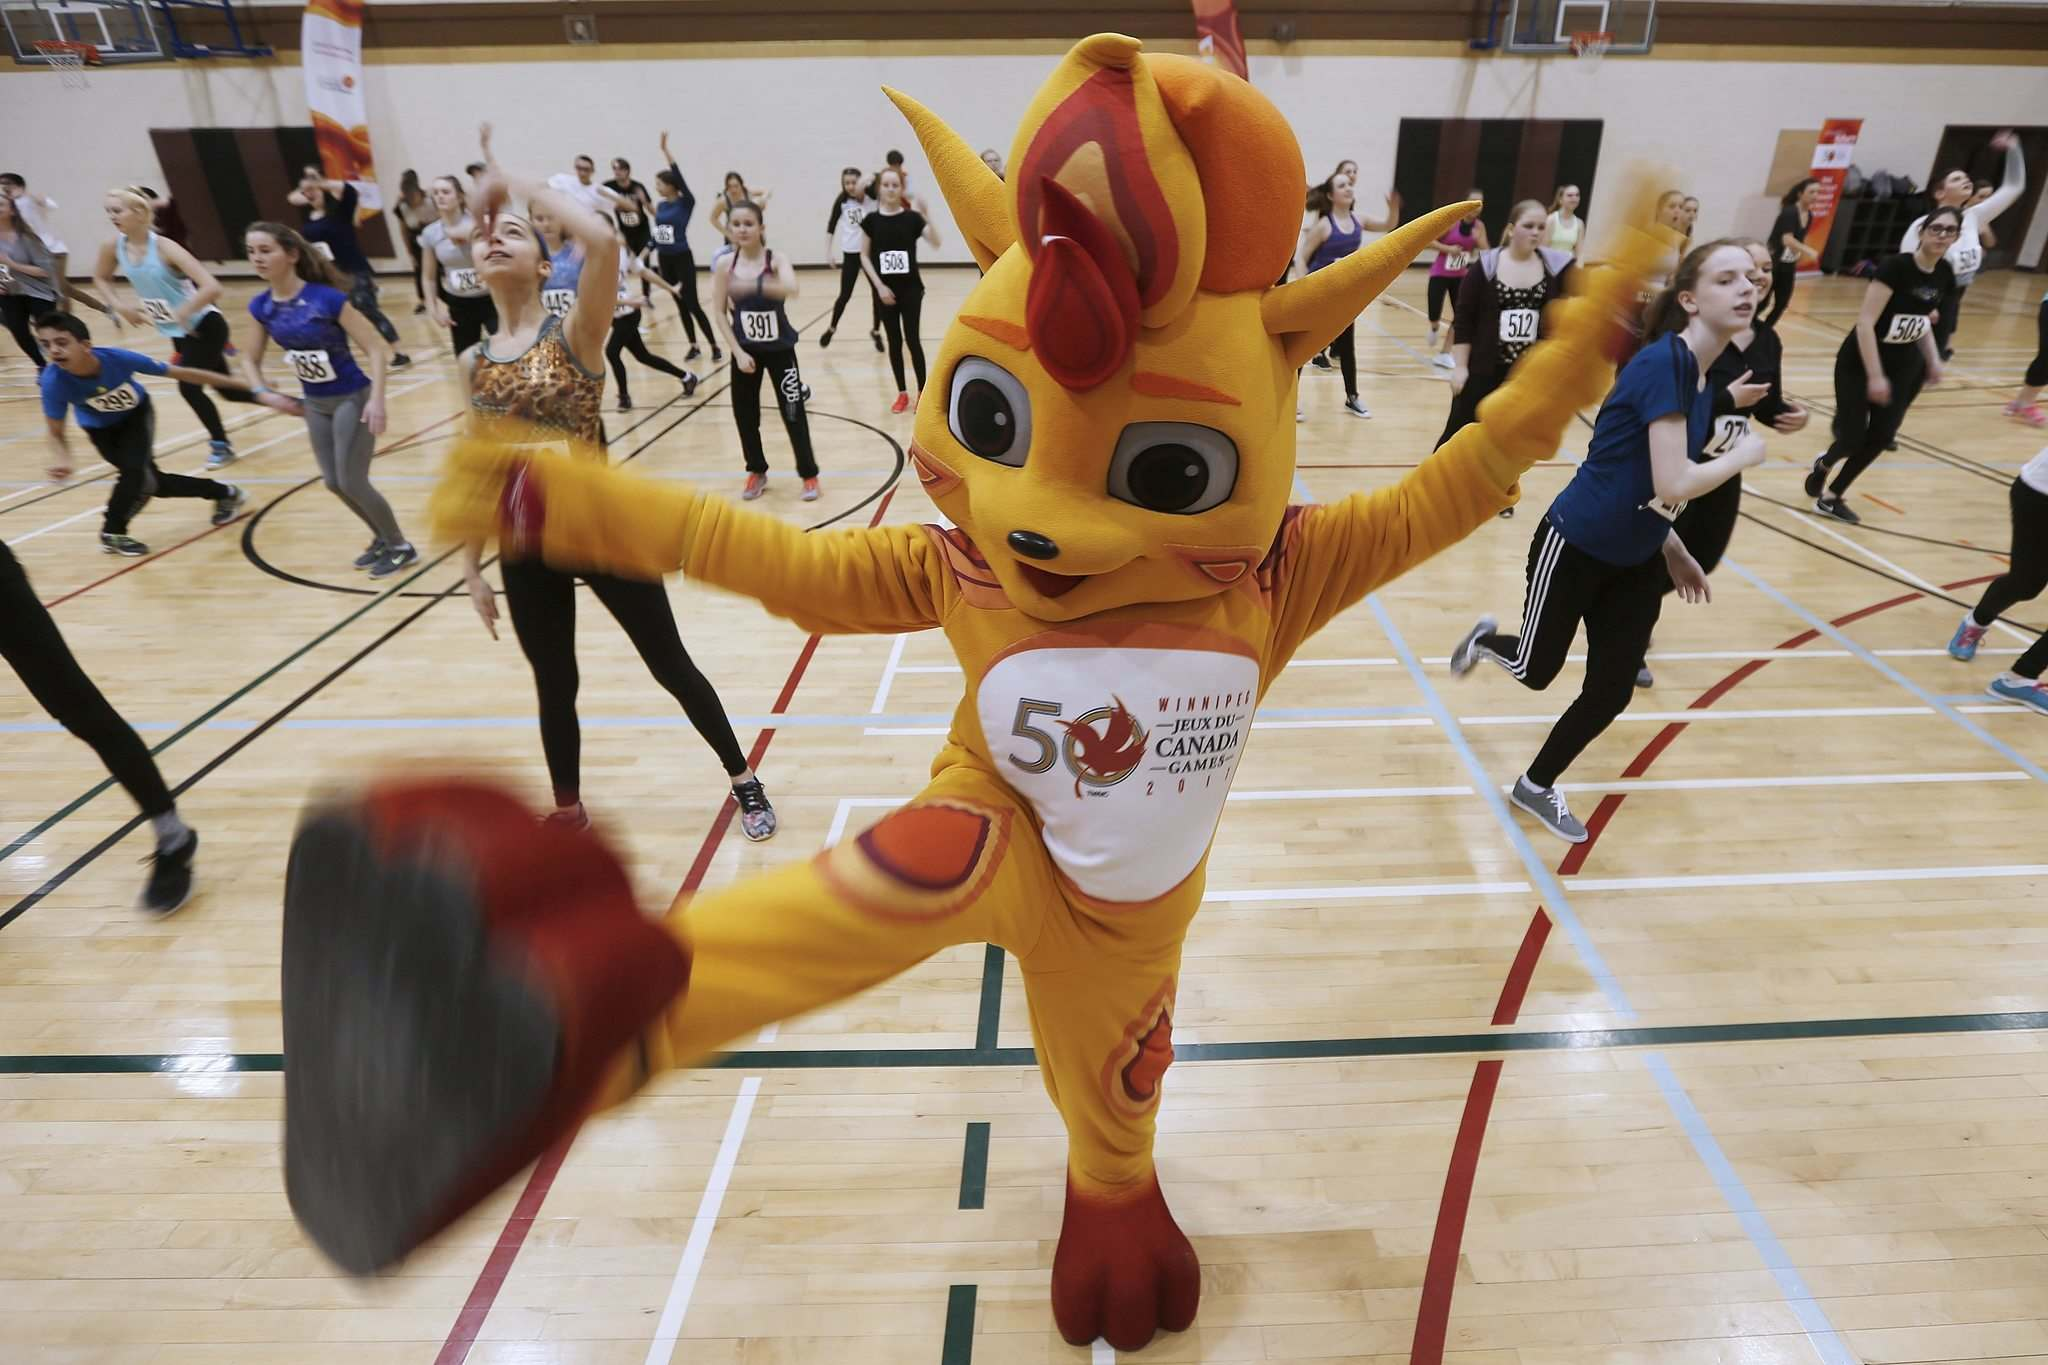 JOHN WOODS / WINNIPEG FREE PRESS FILES</p><p>Meet Niibin, the mascot for the 2017 Canada Summer Games in Winnipeggers. This critter looks like summer and sure knows how to pump up a crowd.</p>